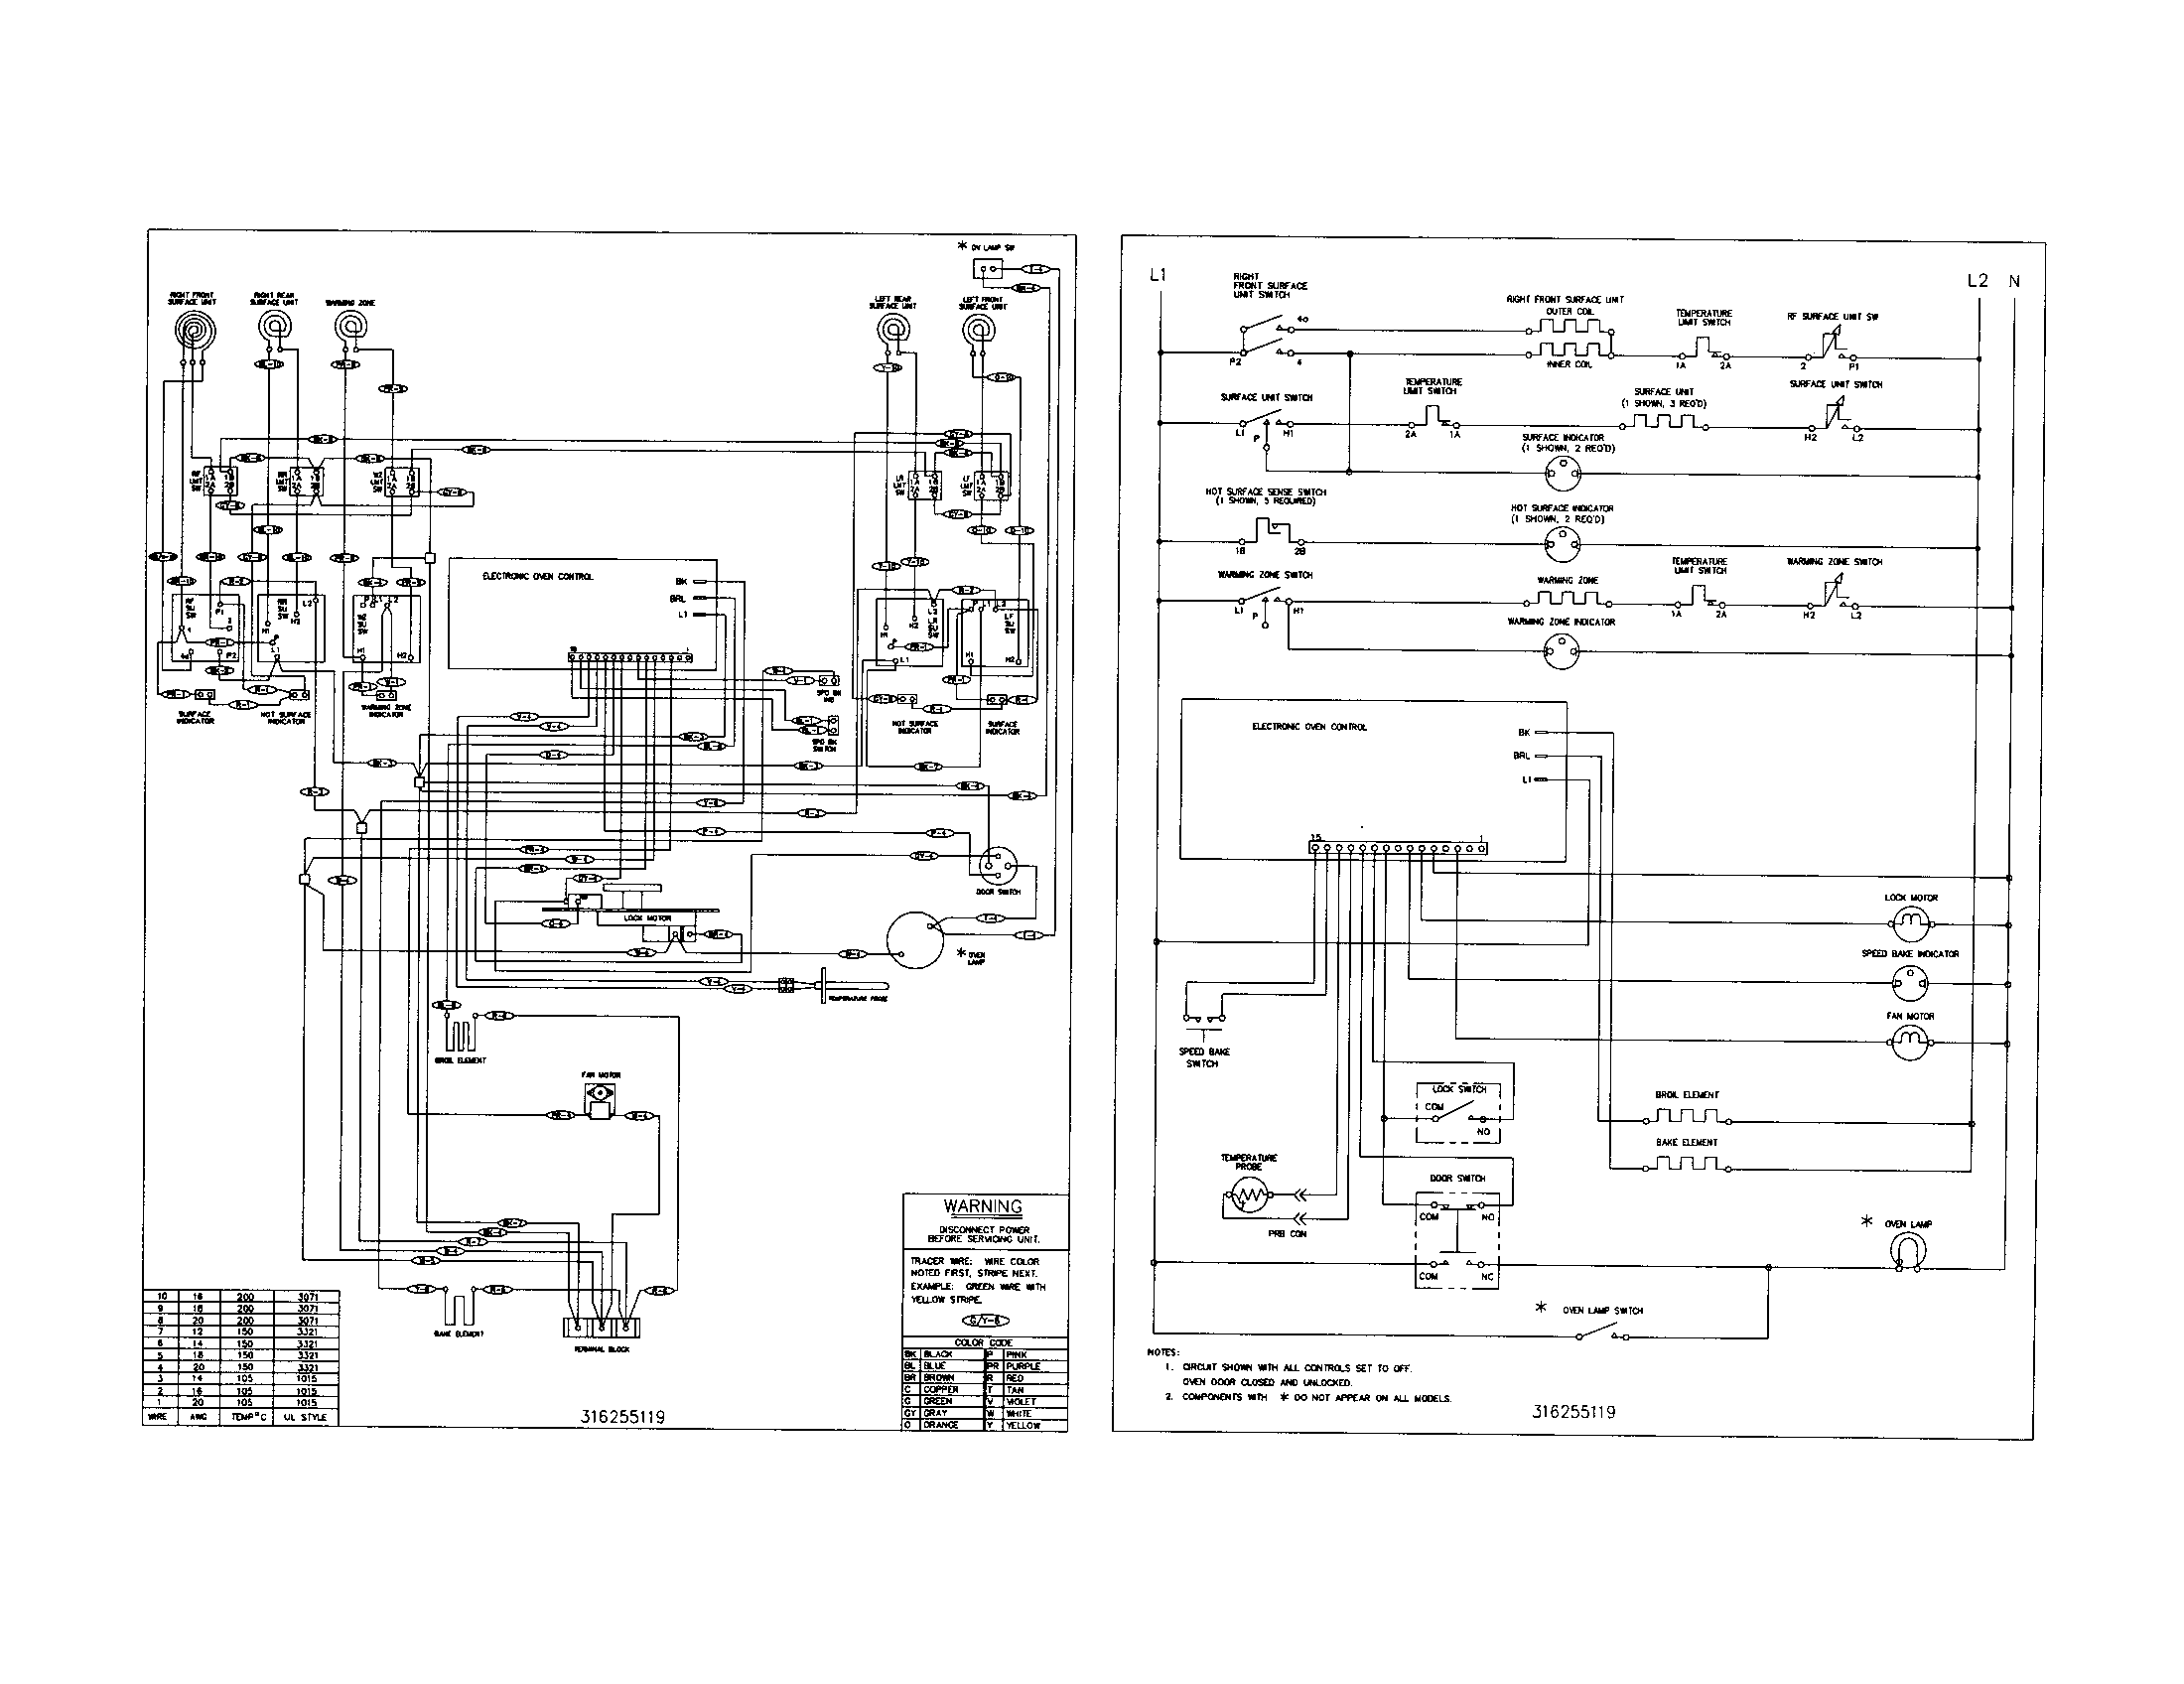 1981 300d Wiring Diagram Battery Diagrams Wiring Diagram